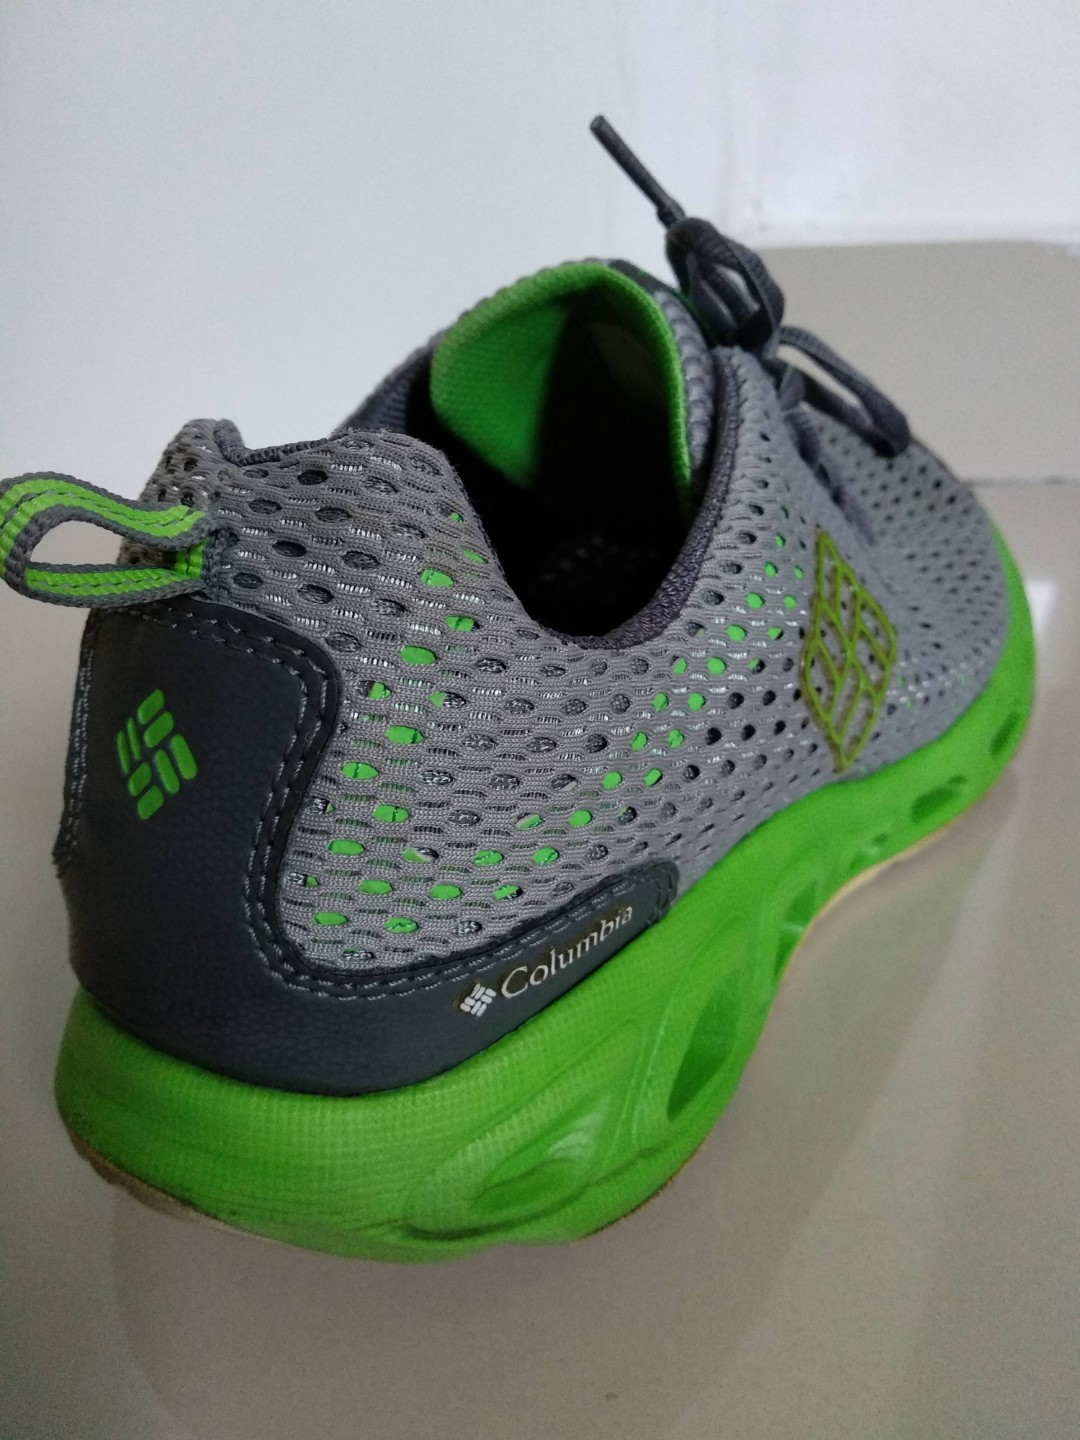 14d967e9f254 Columbia Air   Water Breathable Full Flexing Outdoor Sports Shoes Super  Lightweight Unique Sipped Lug Traction